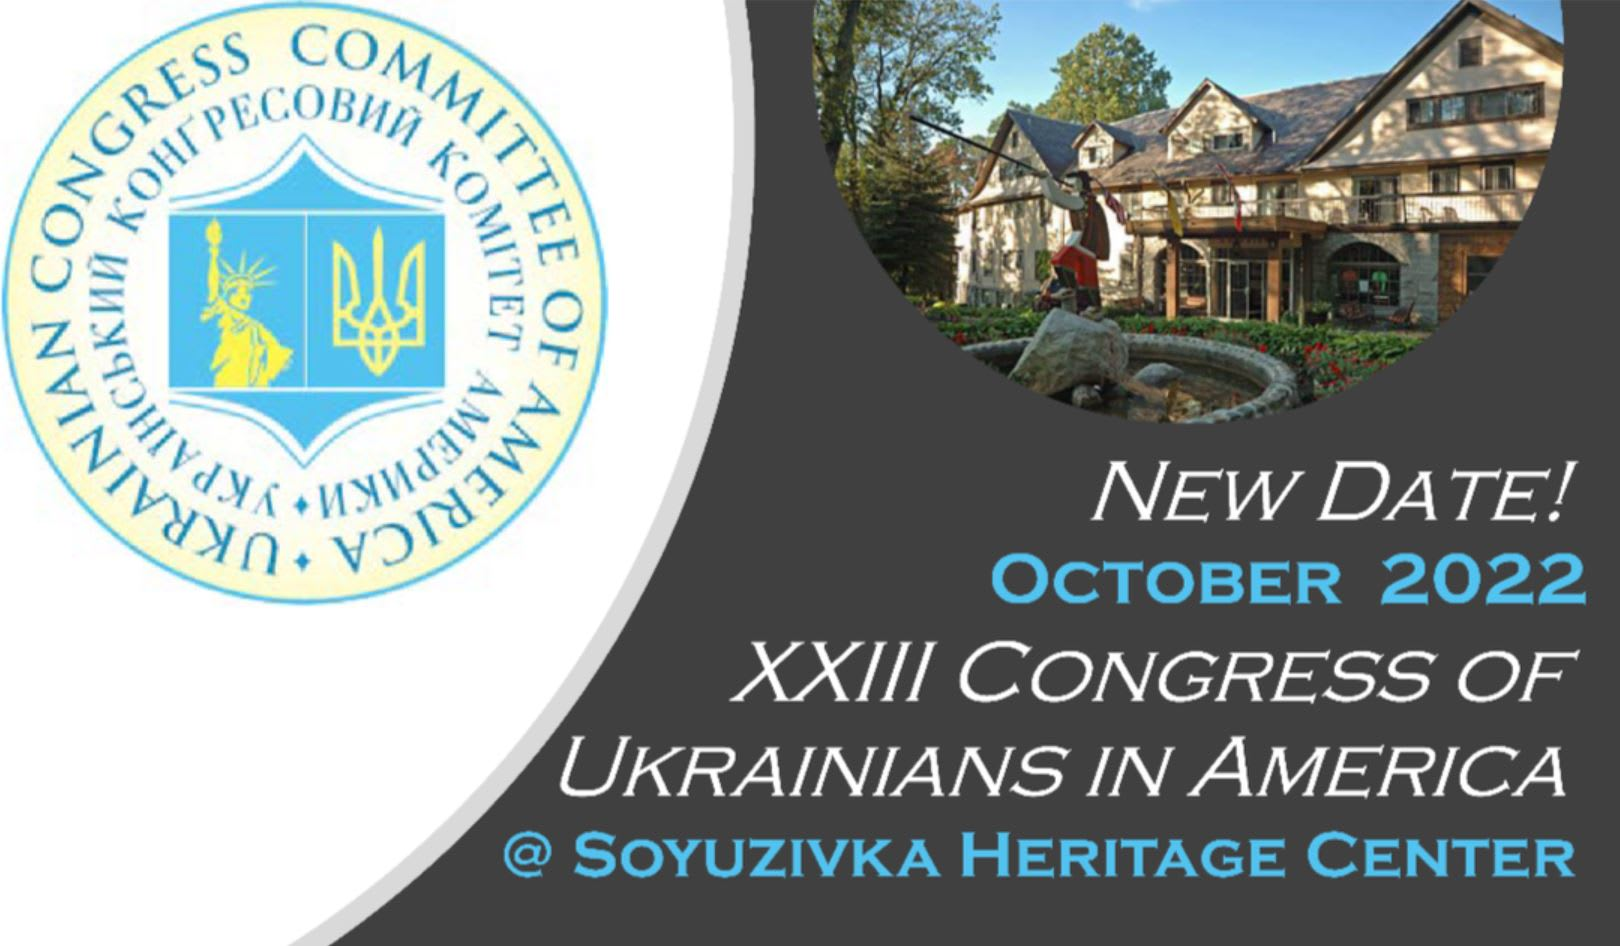 XXIII Congress of Ukrainians in America